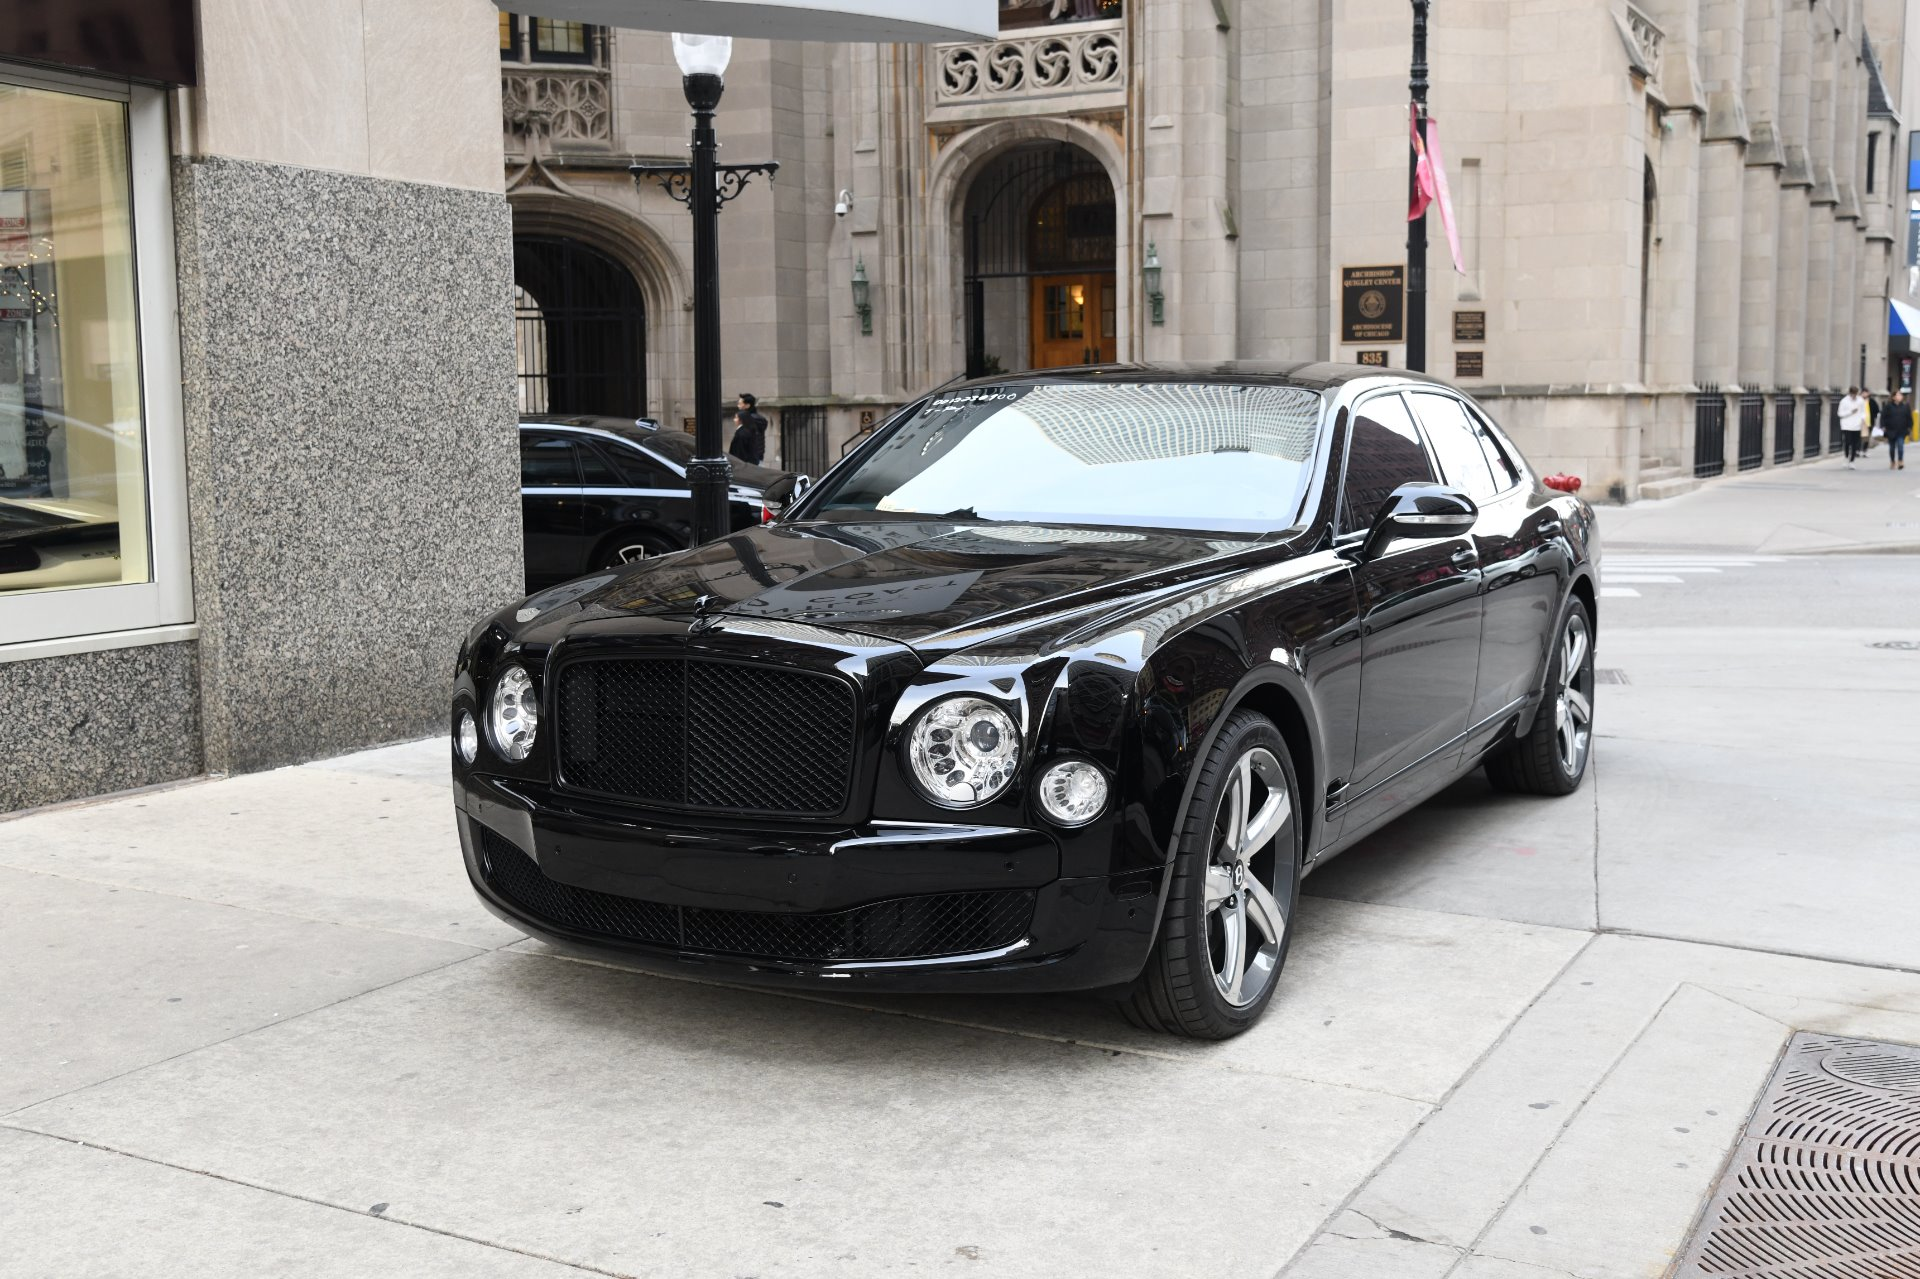 2012 bentley mulsanne used bentley used rolls royce for Gold coast bentley luxury motors